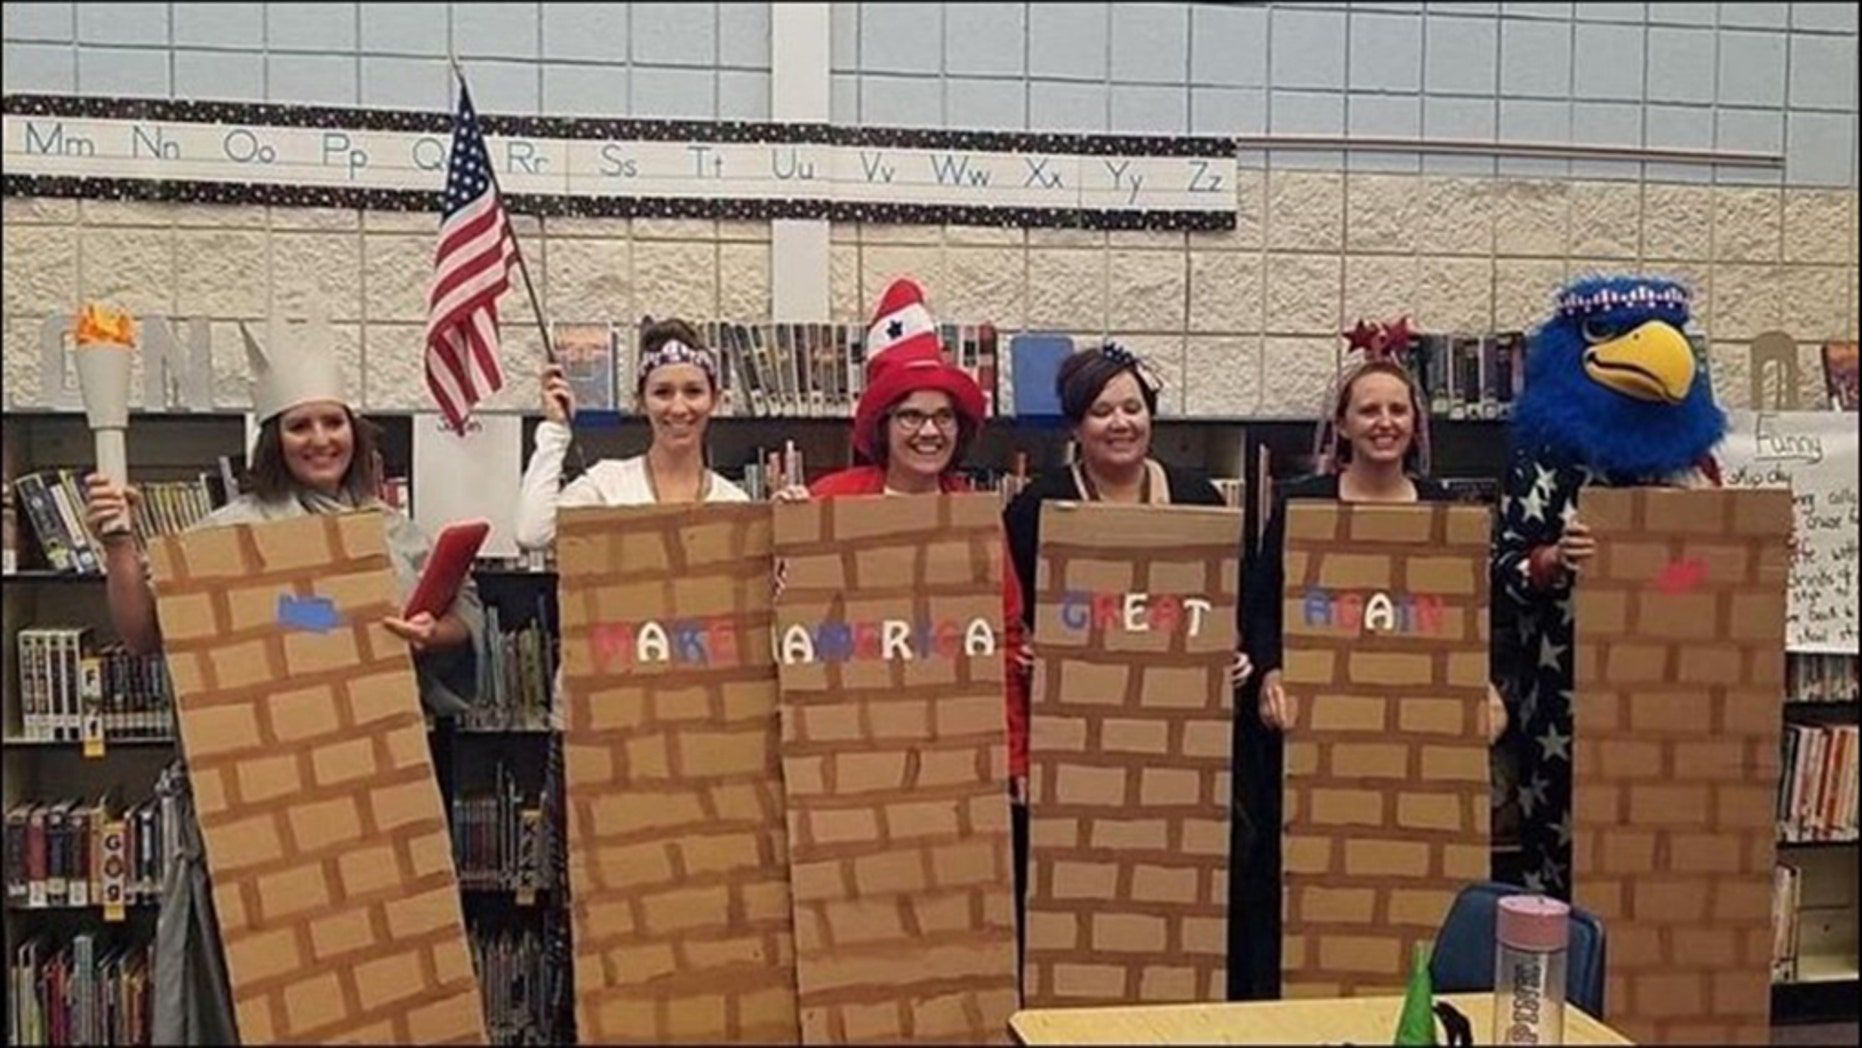 Idaho school hit with backlash over offensive Trump-inspired costumes